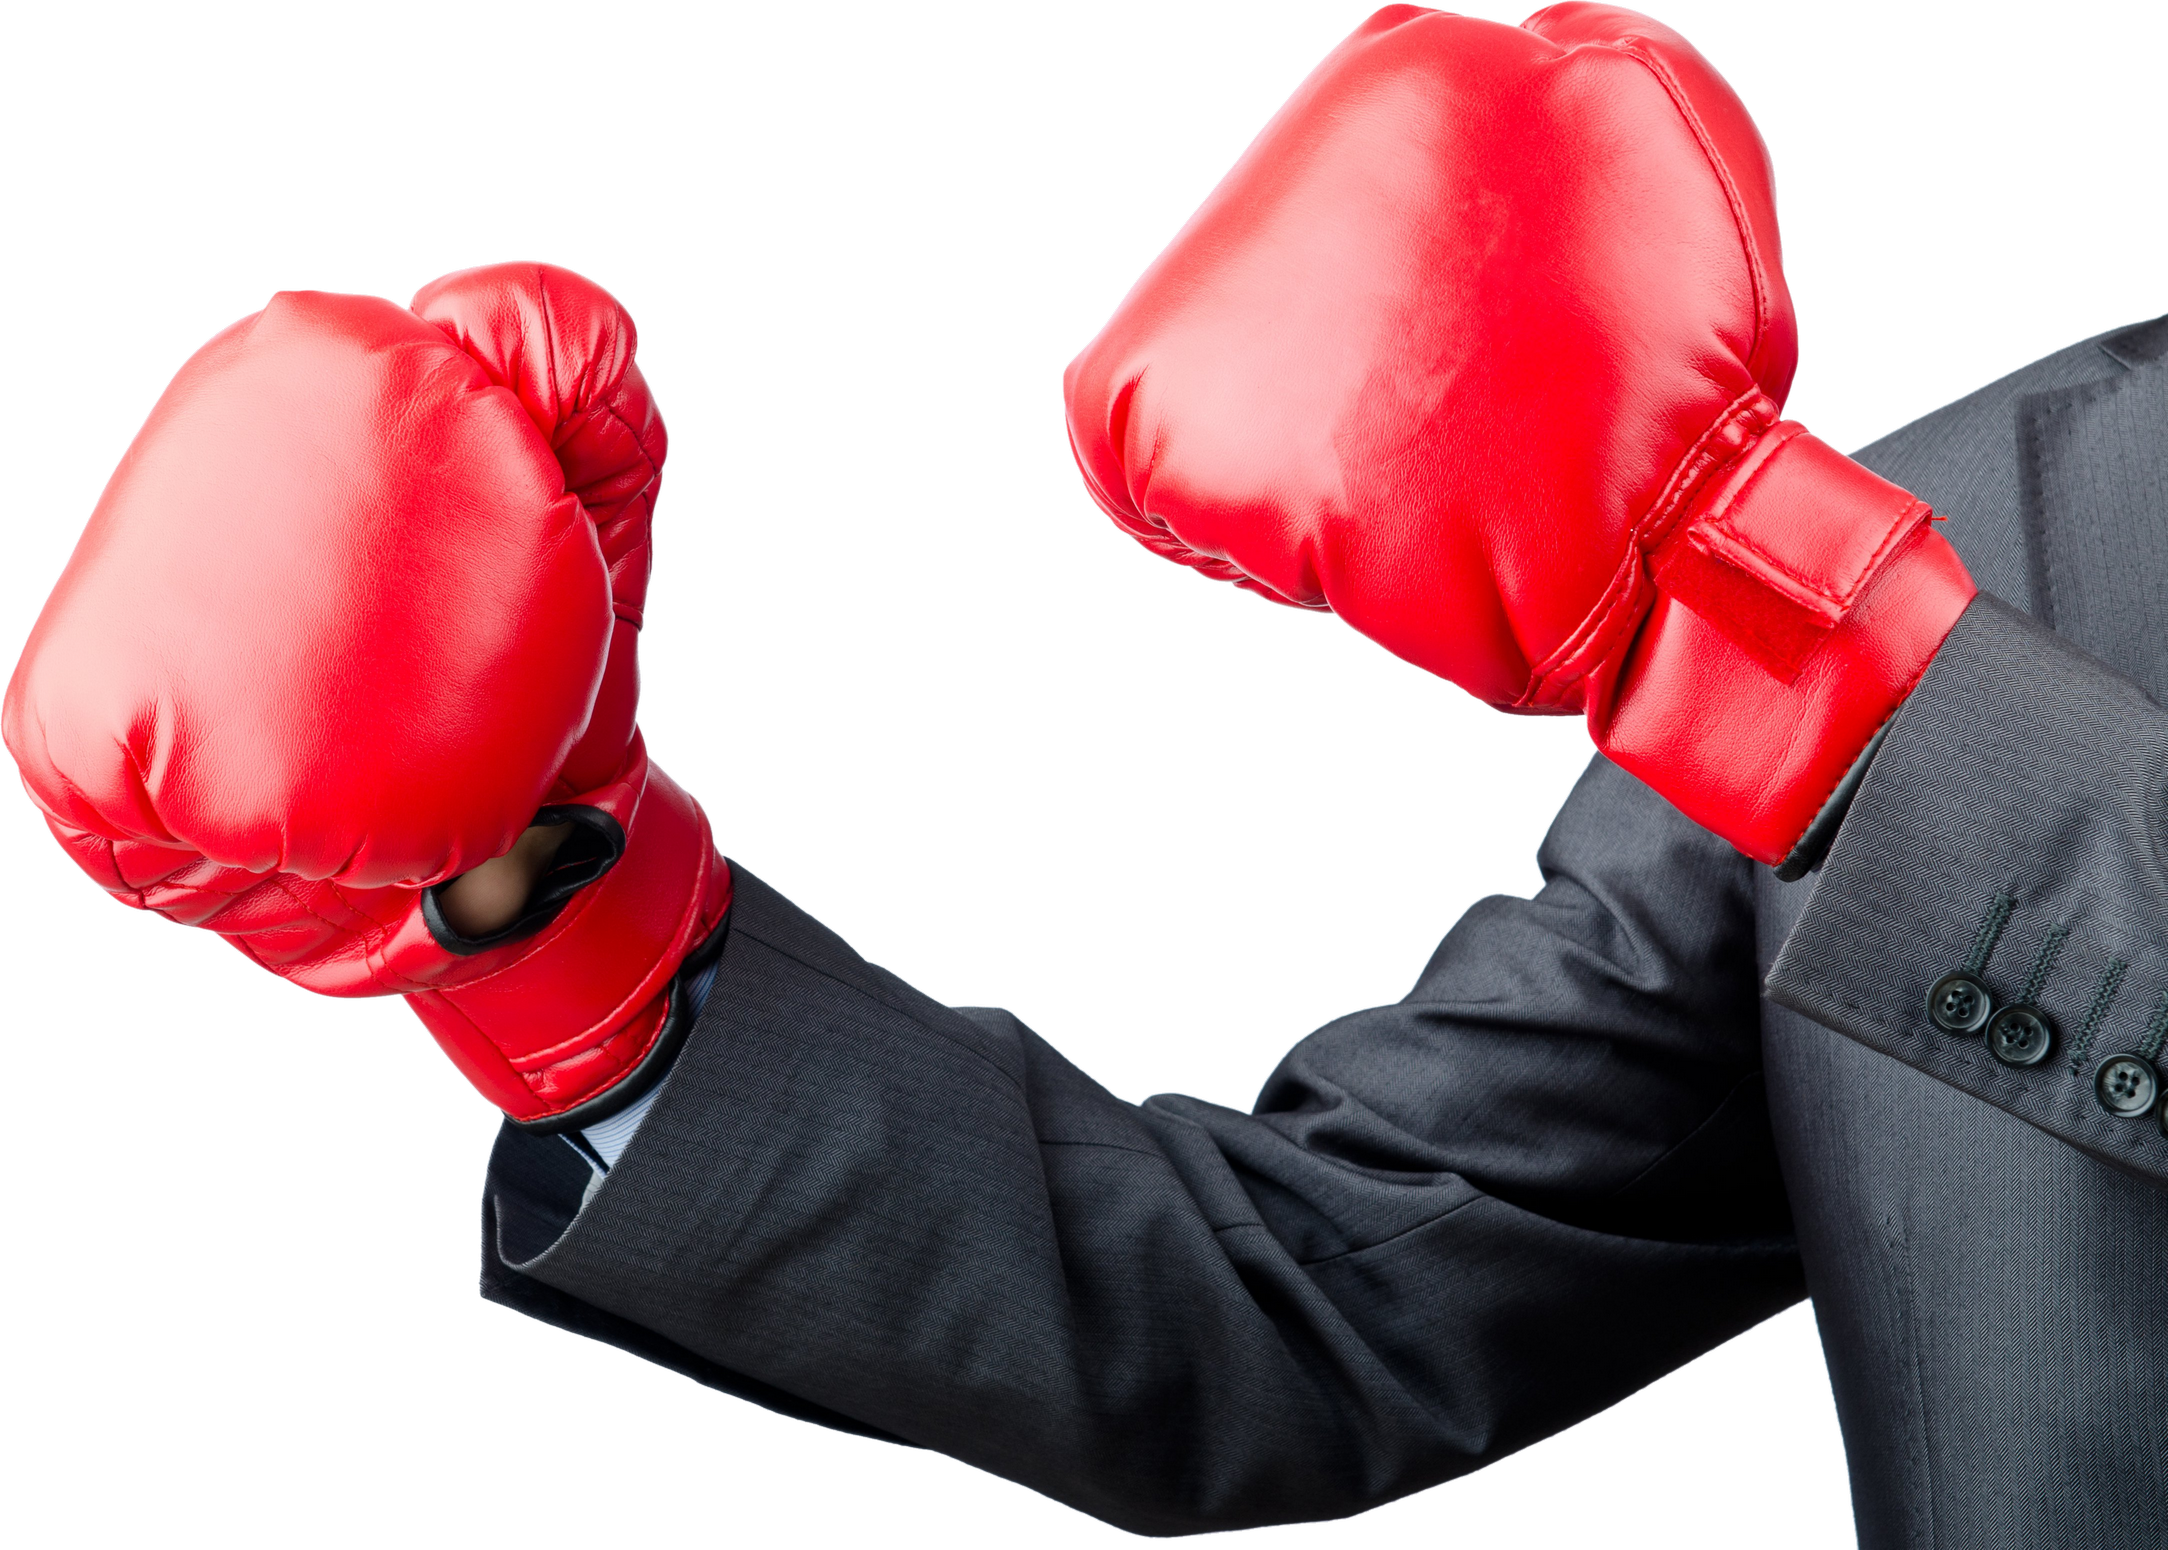 Boxing glove png image. Gloves clipart transparent background